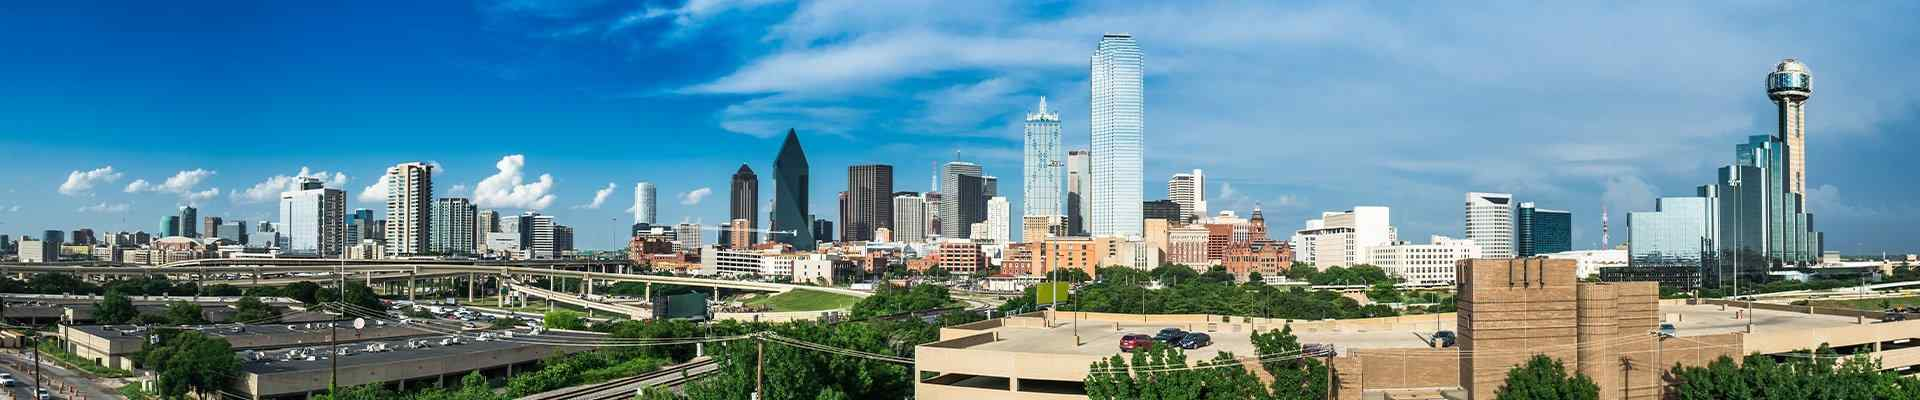 skyline panorama of the city of dallas texas